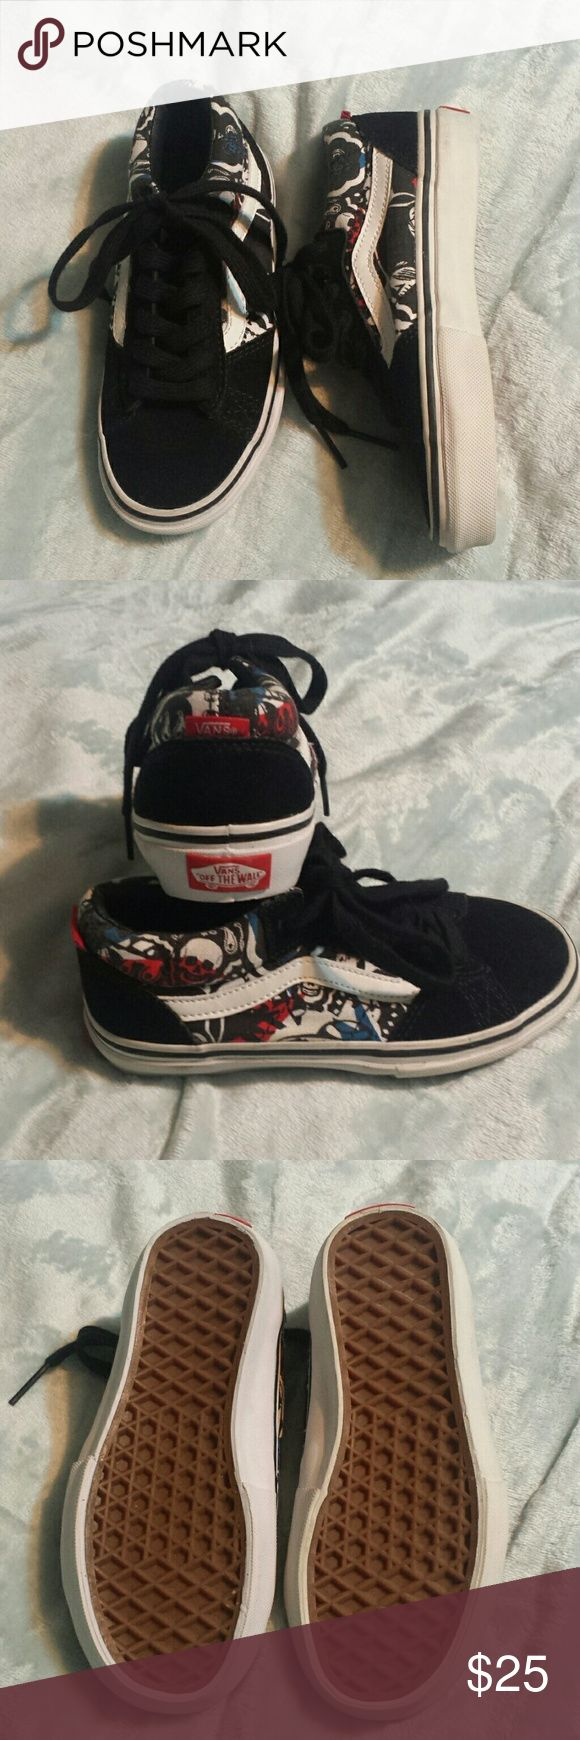 NWOT boys Vans sneakers Brand new, never worn,  Vans sneakers size youth 13. My son tore the tags off and never wore them.  Now he's out grown them.  My loss=your gain. Vans Shoes Sneakers